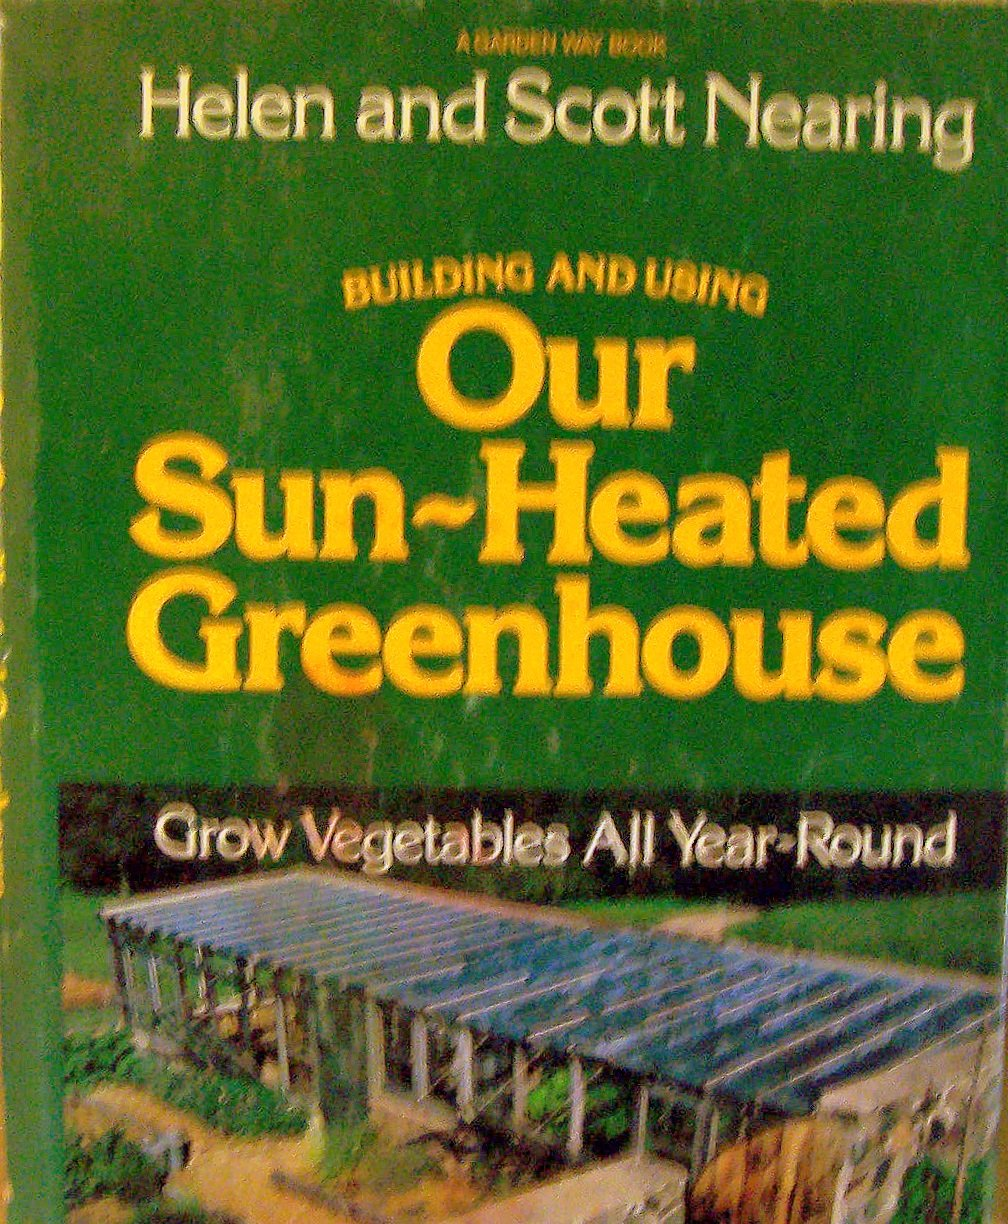 Building and using our sun-heated greenhouse: Grow vegetables all year-round, Nearing, Helen